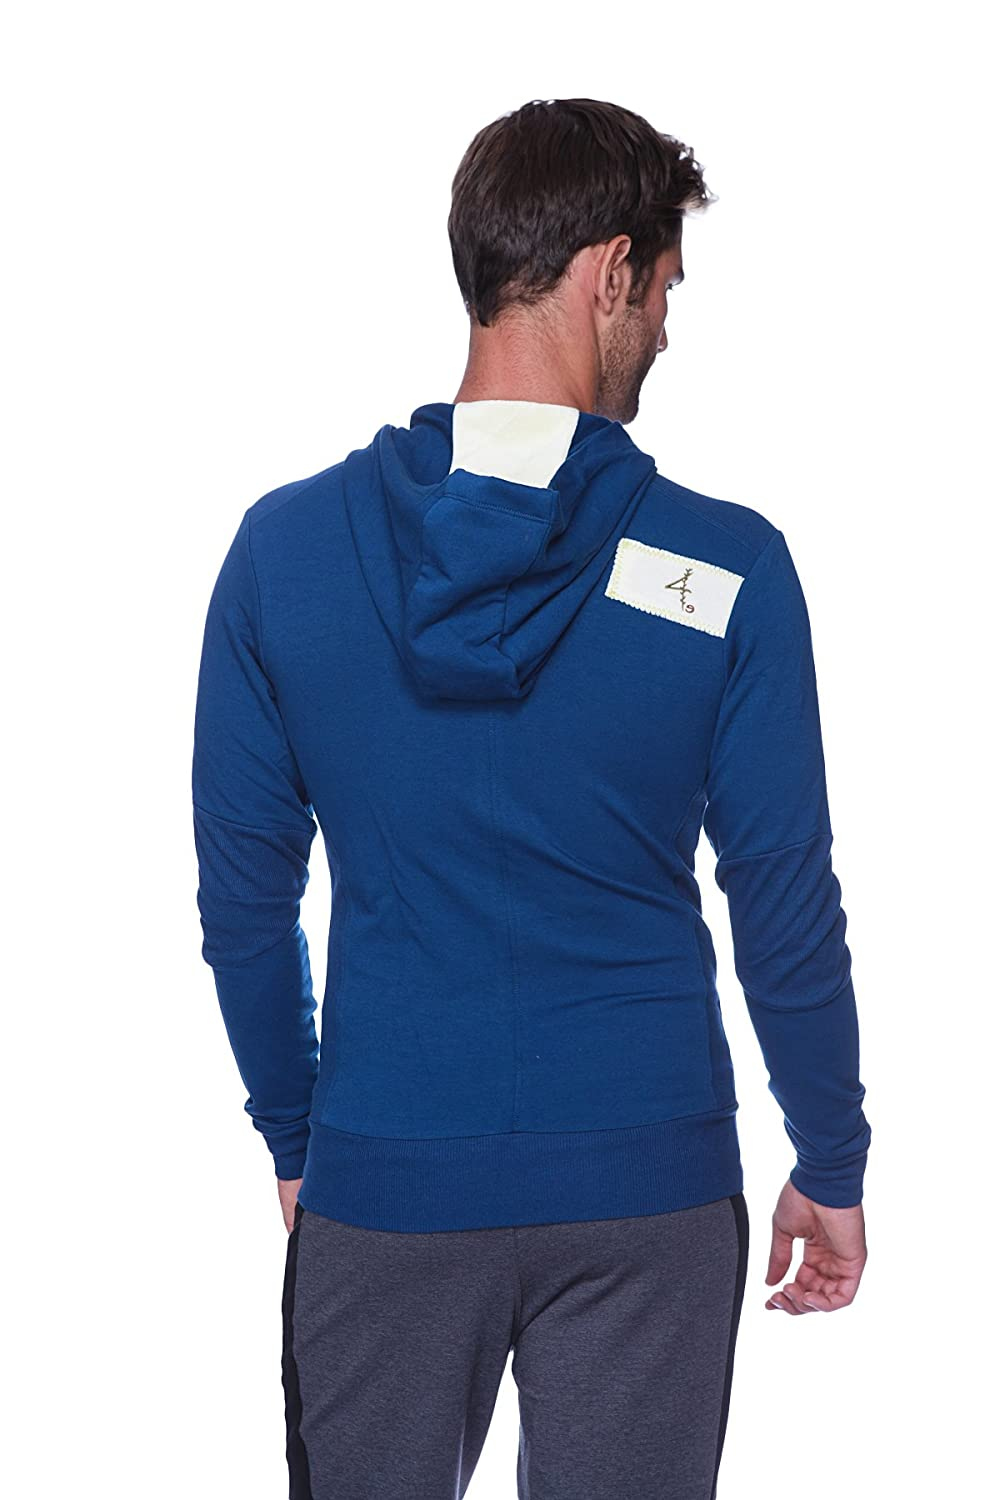 4-rth Edge Mens Crossover Transition Hoodie